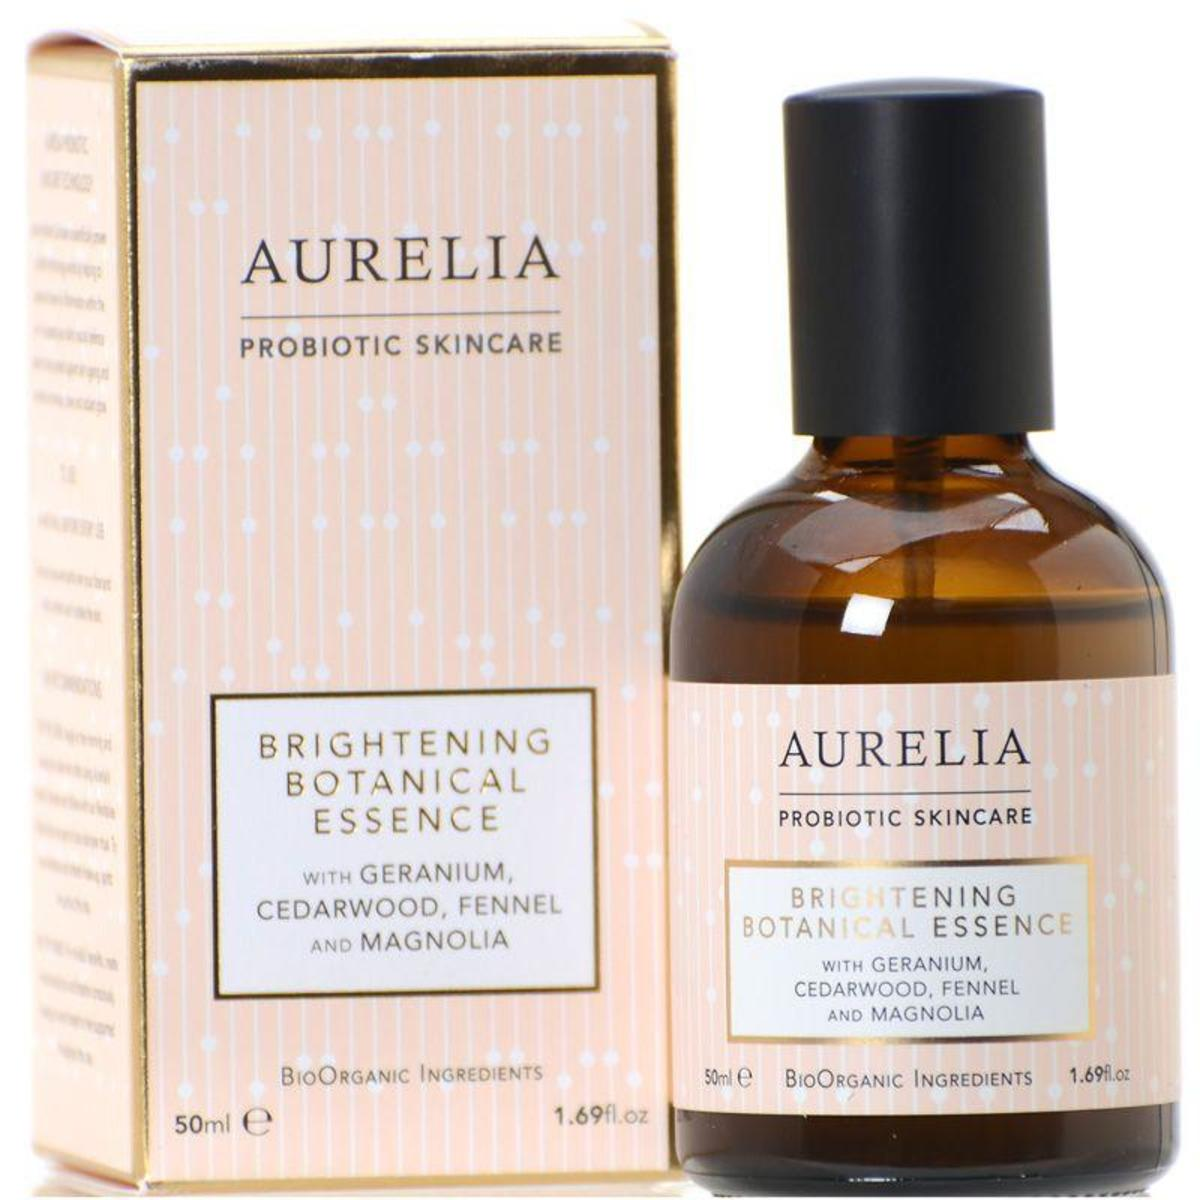 Aurelia Skincare Brightening Botanical Essence